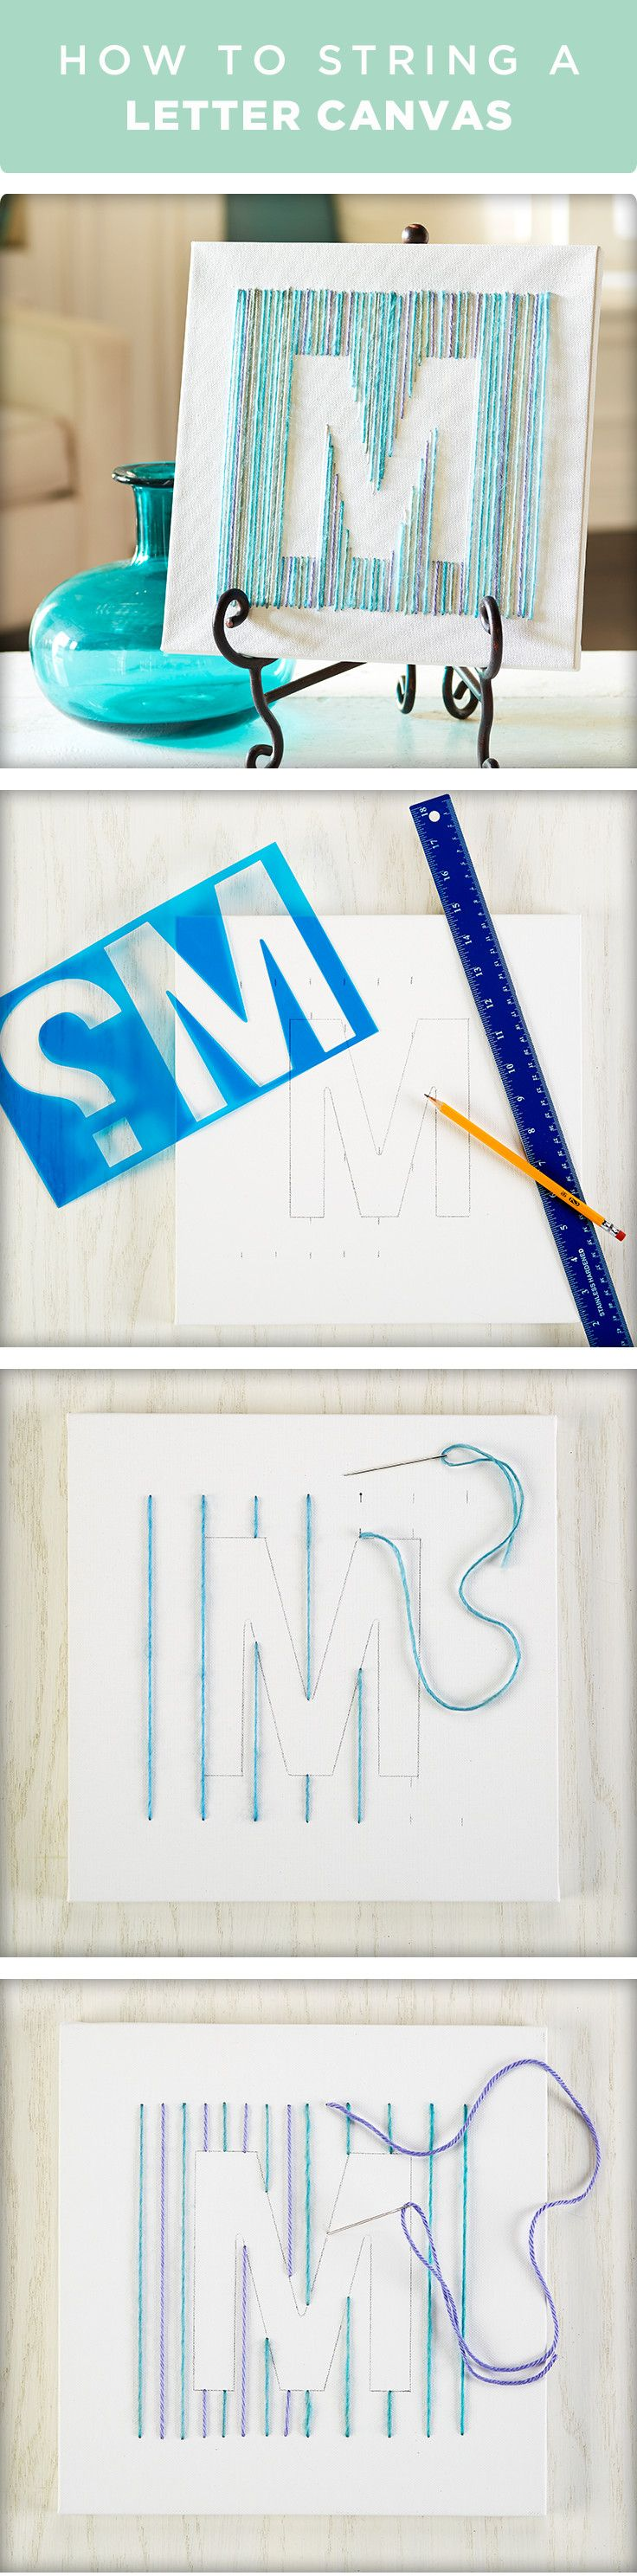 Learn how to string a letter on canvas. Outline the letter using a stencil…